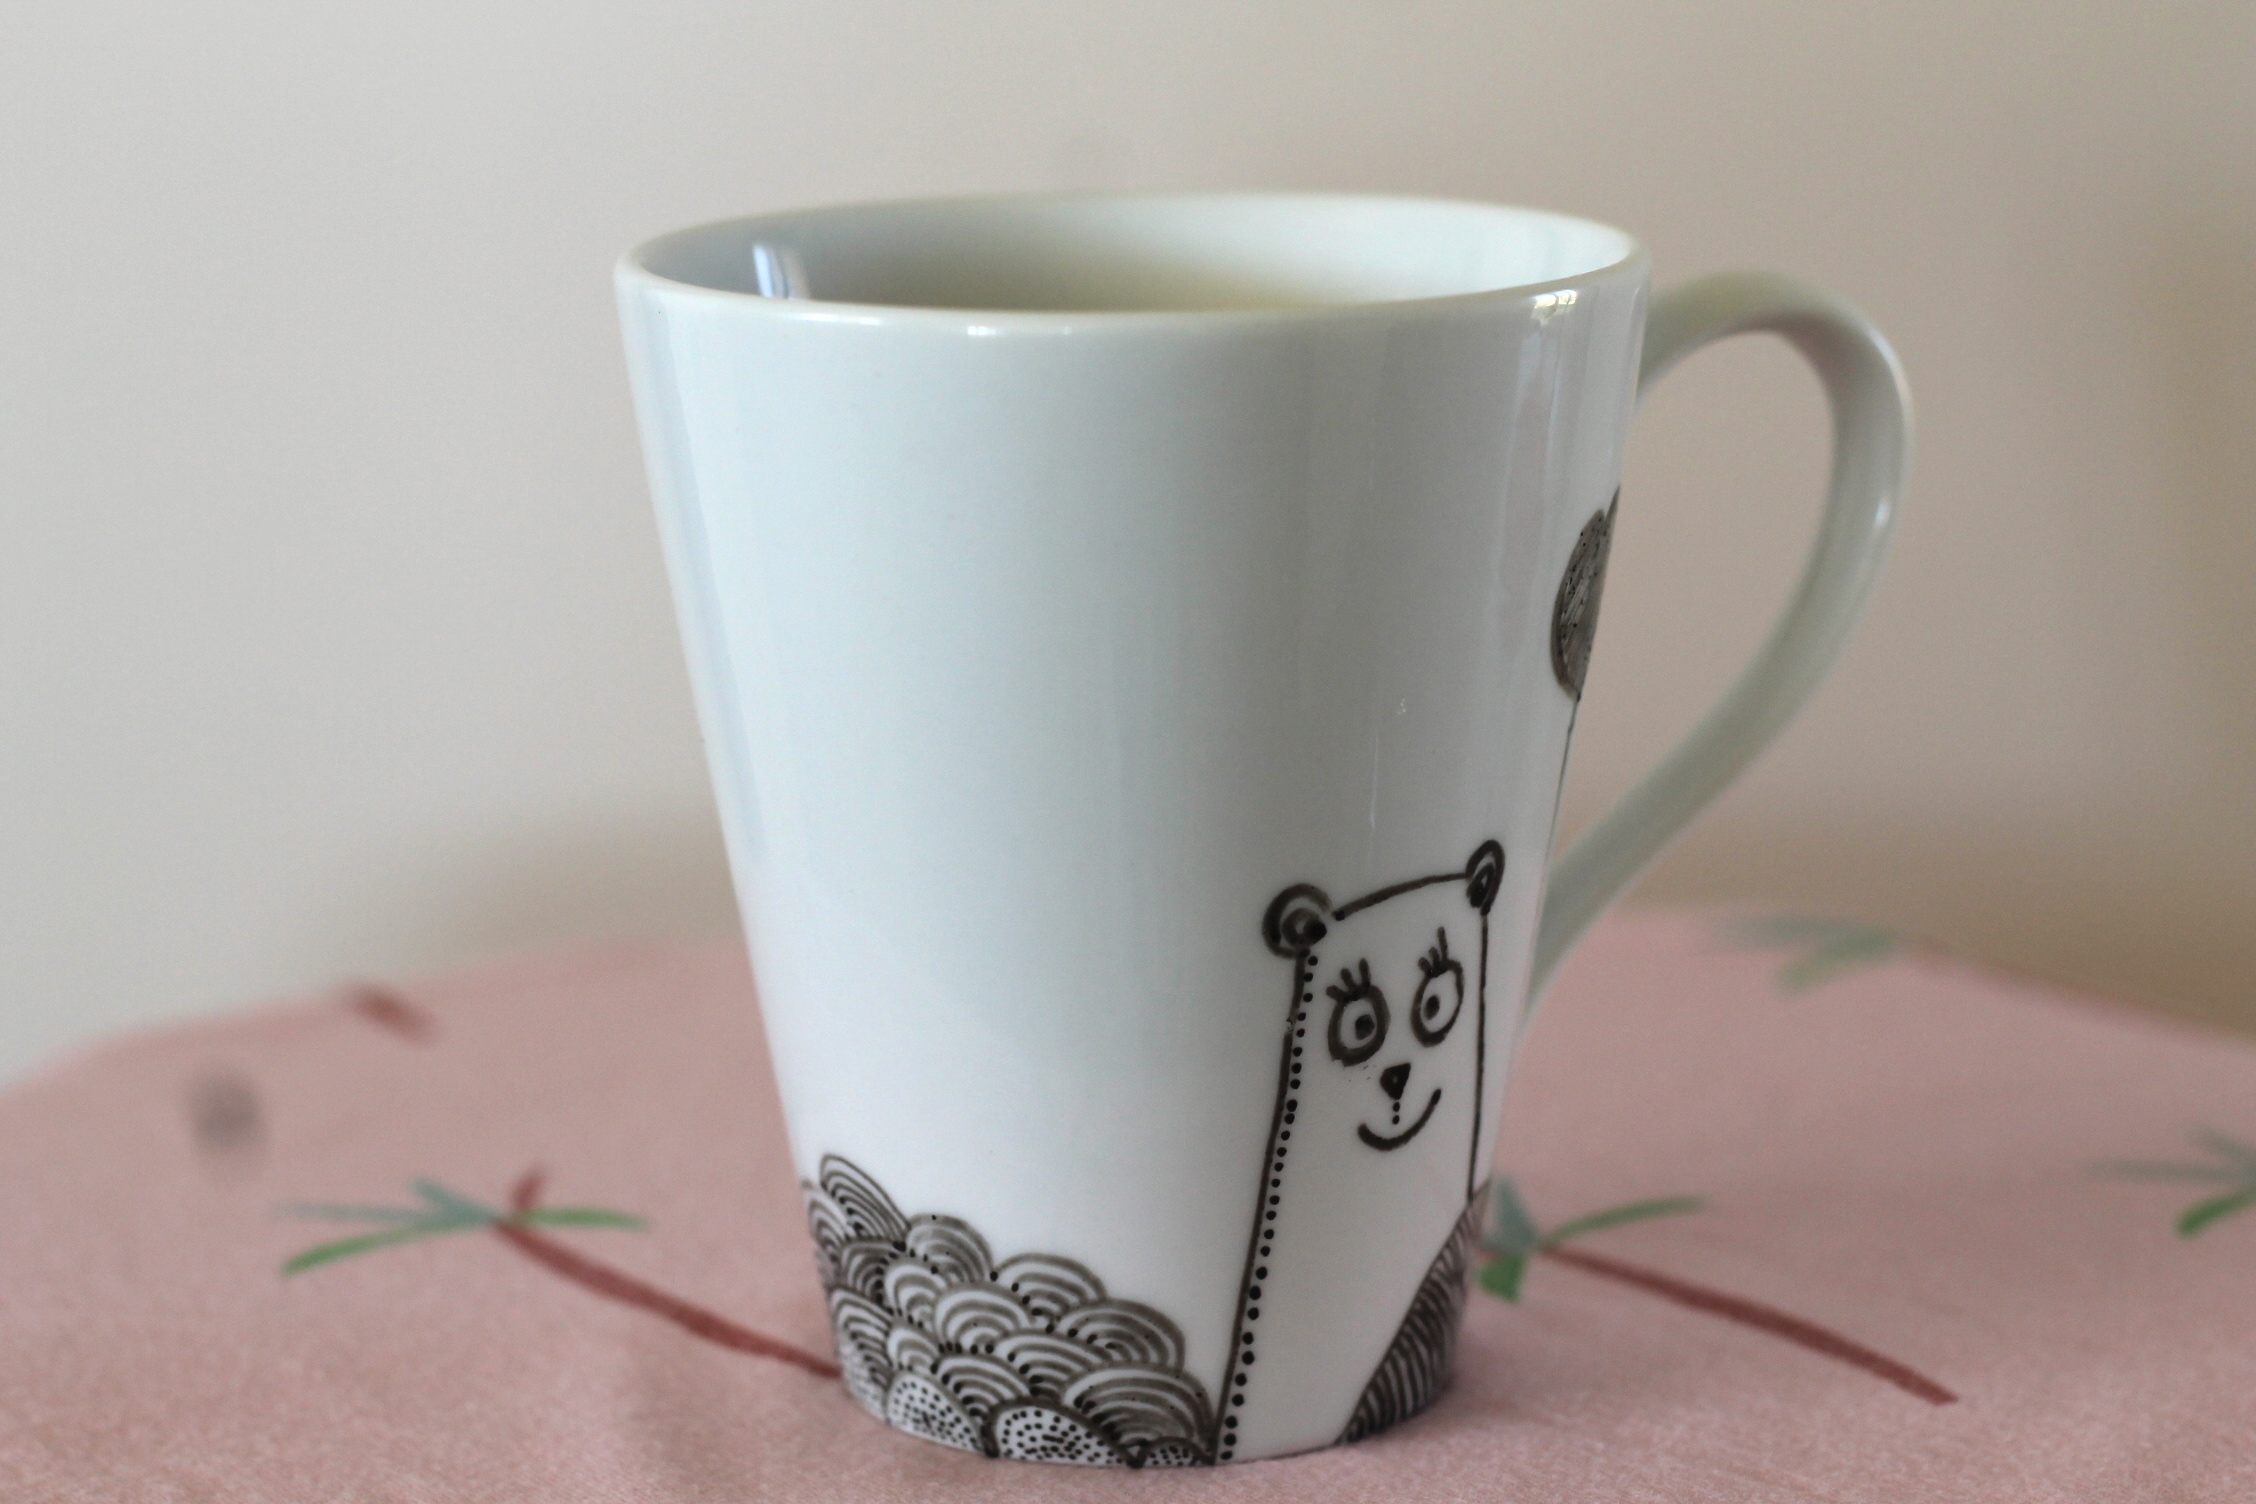 diy 7 les mugs en porcelaine sp4nk blog. Black Bedroom Furniture Sets. Home Design Ideas